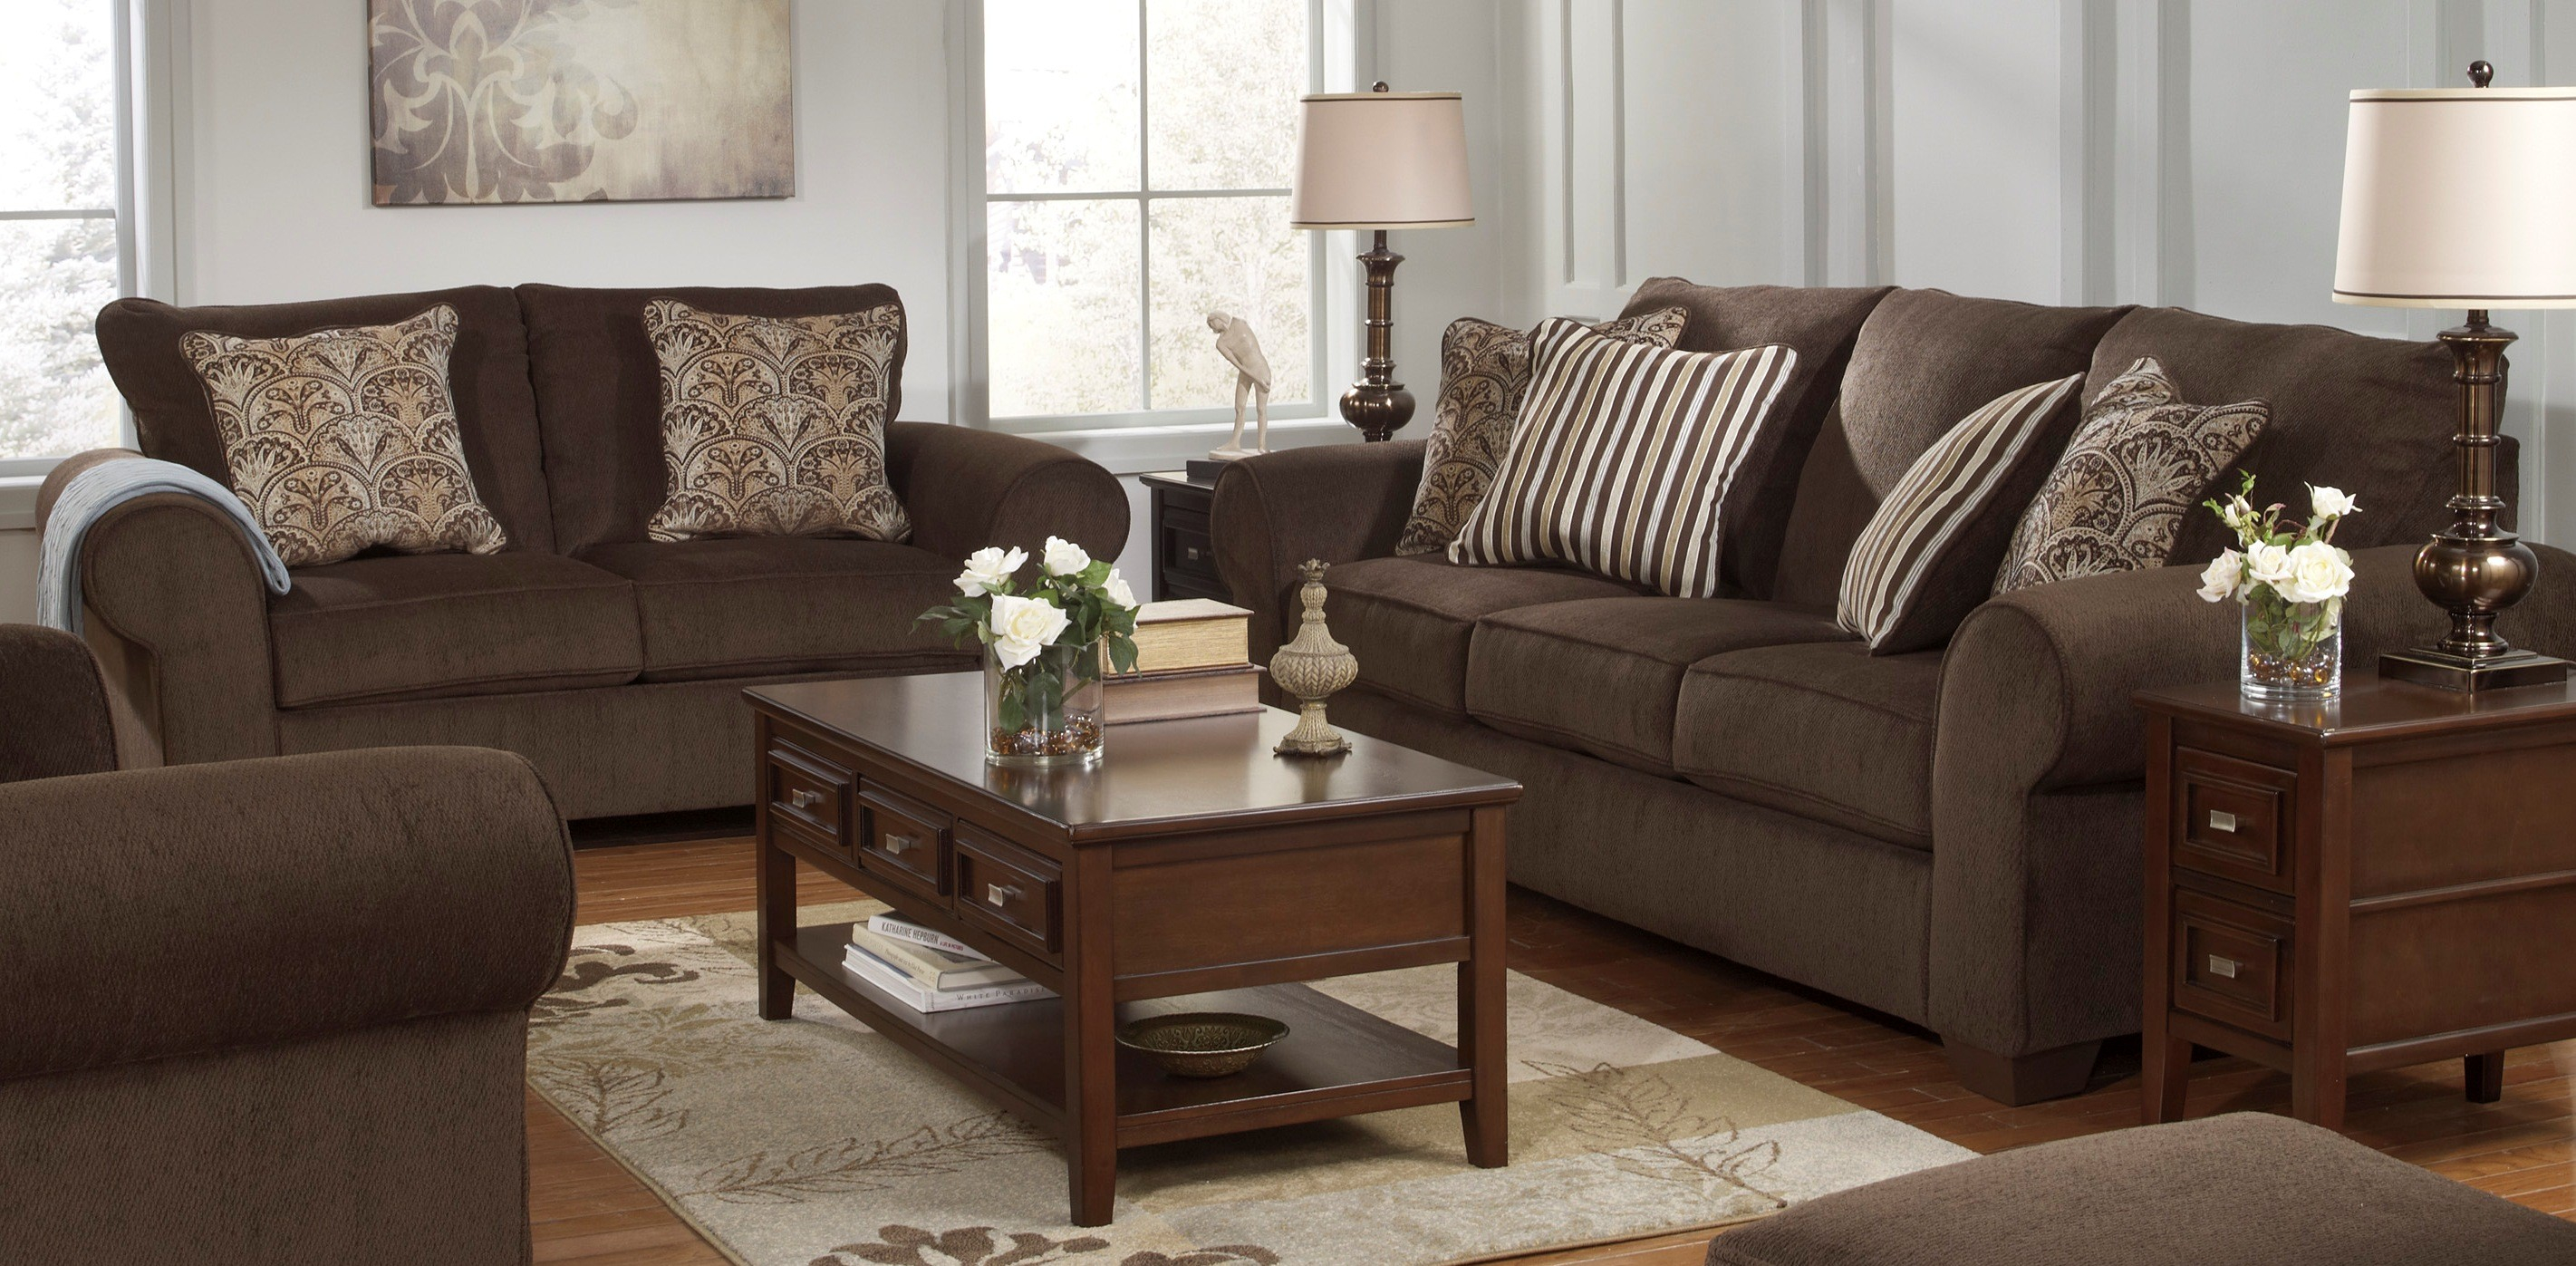 Living Room Set Sale 4610135138 intended for How Much Does A Living Room Set Cost